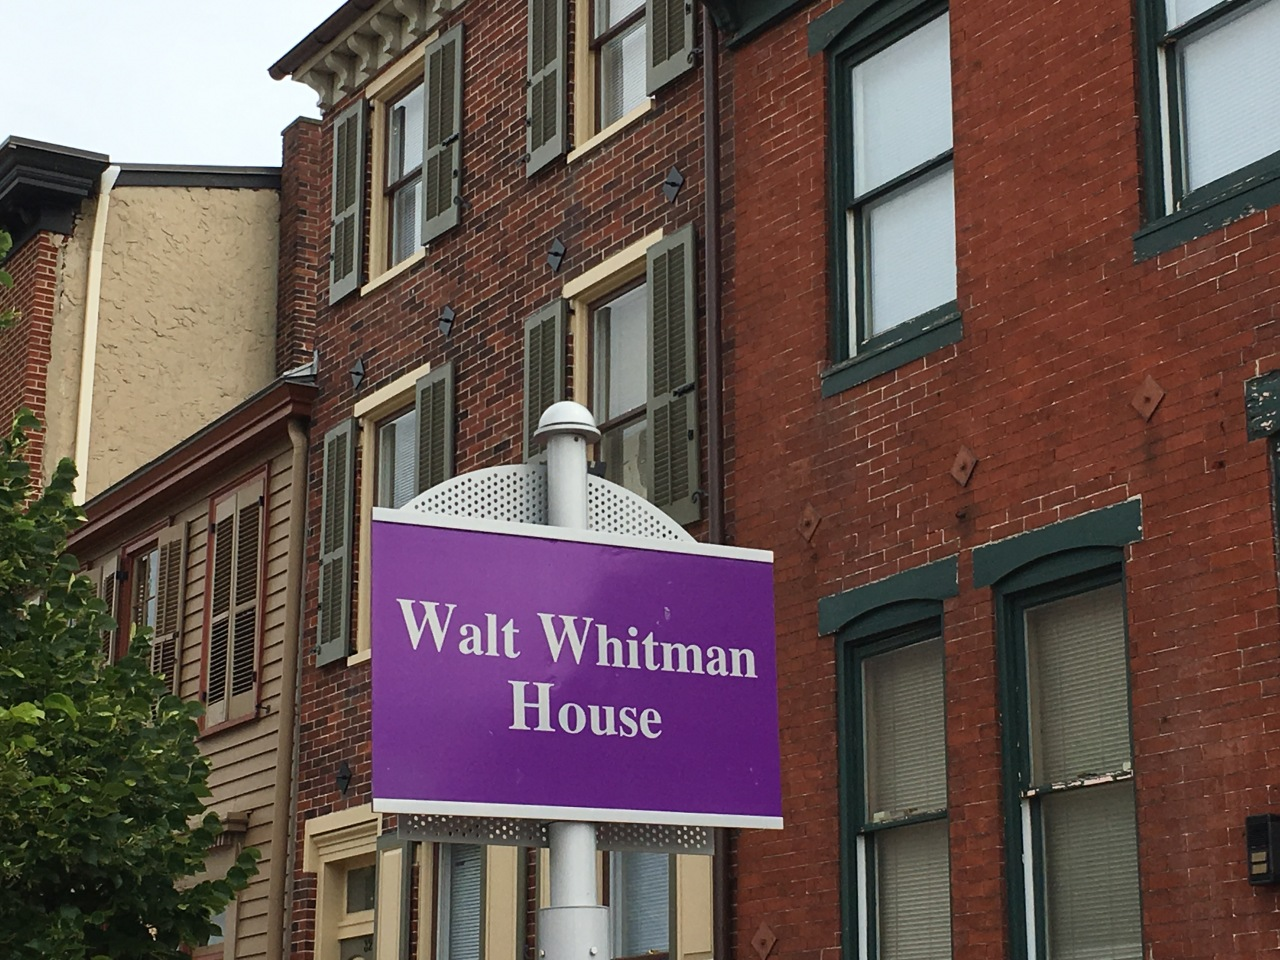 Visiting the Whitman House and Grave